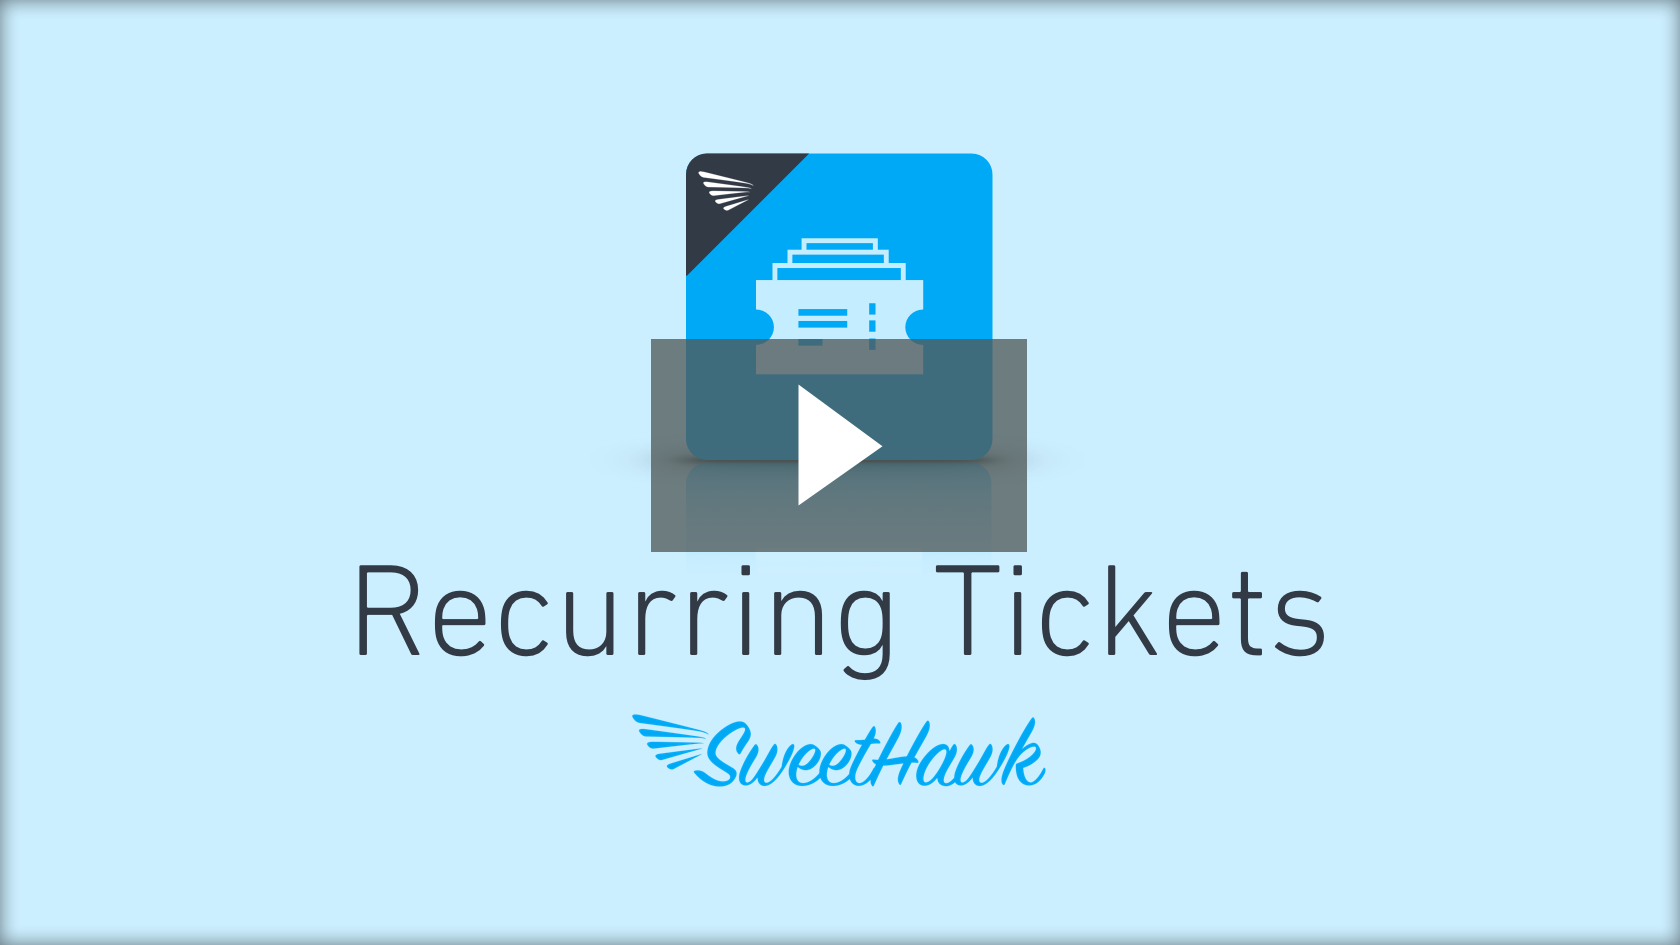 Watch the Recurring Tickets app video